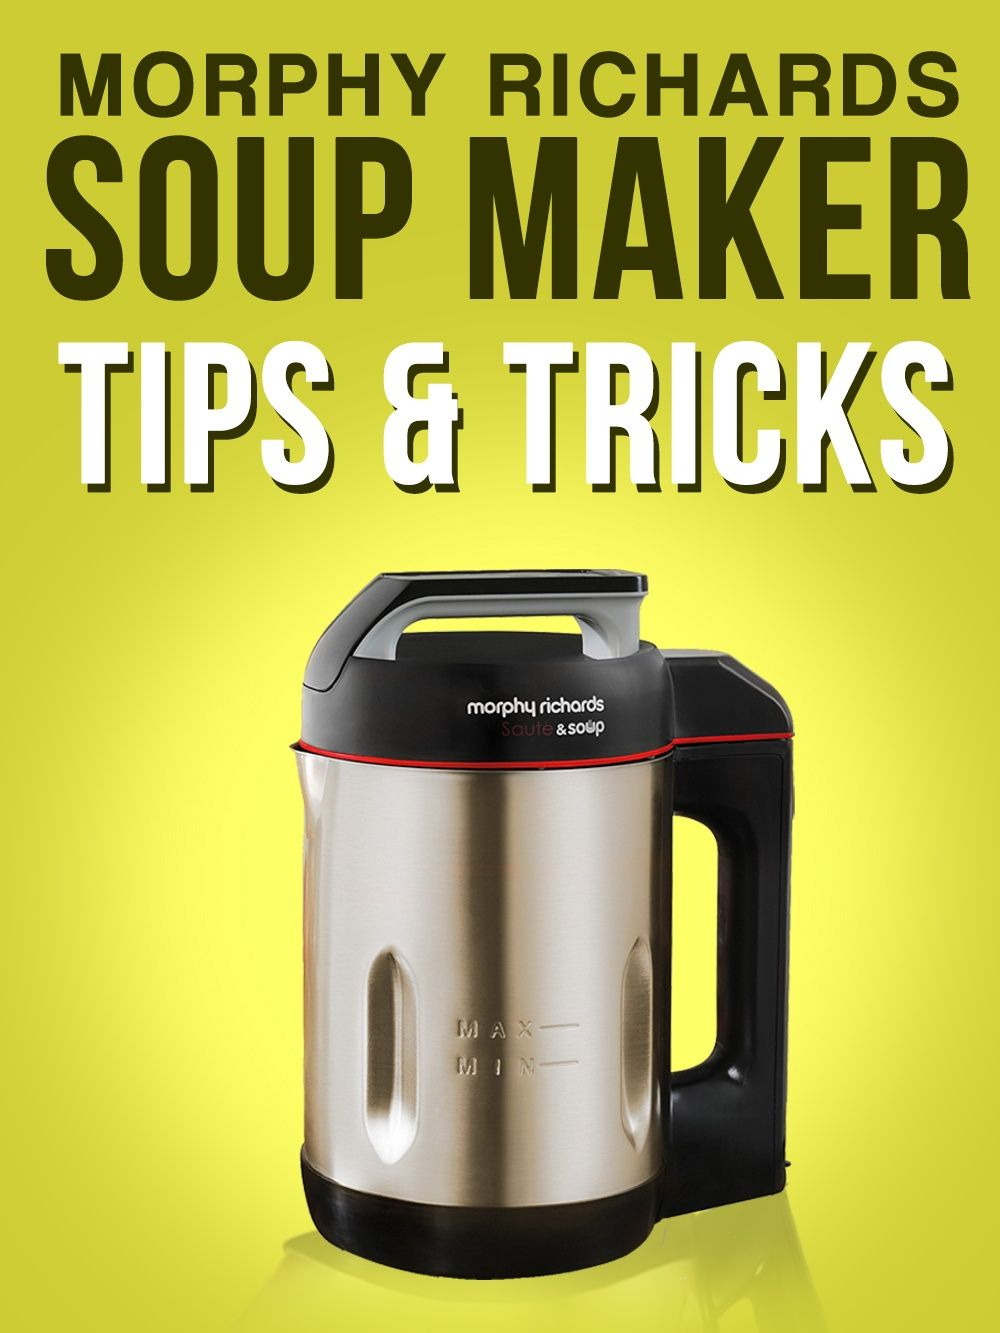 The Ultimate Guide To The Morphy Richards Soup Maker | Body